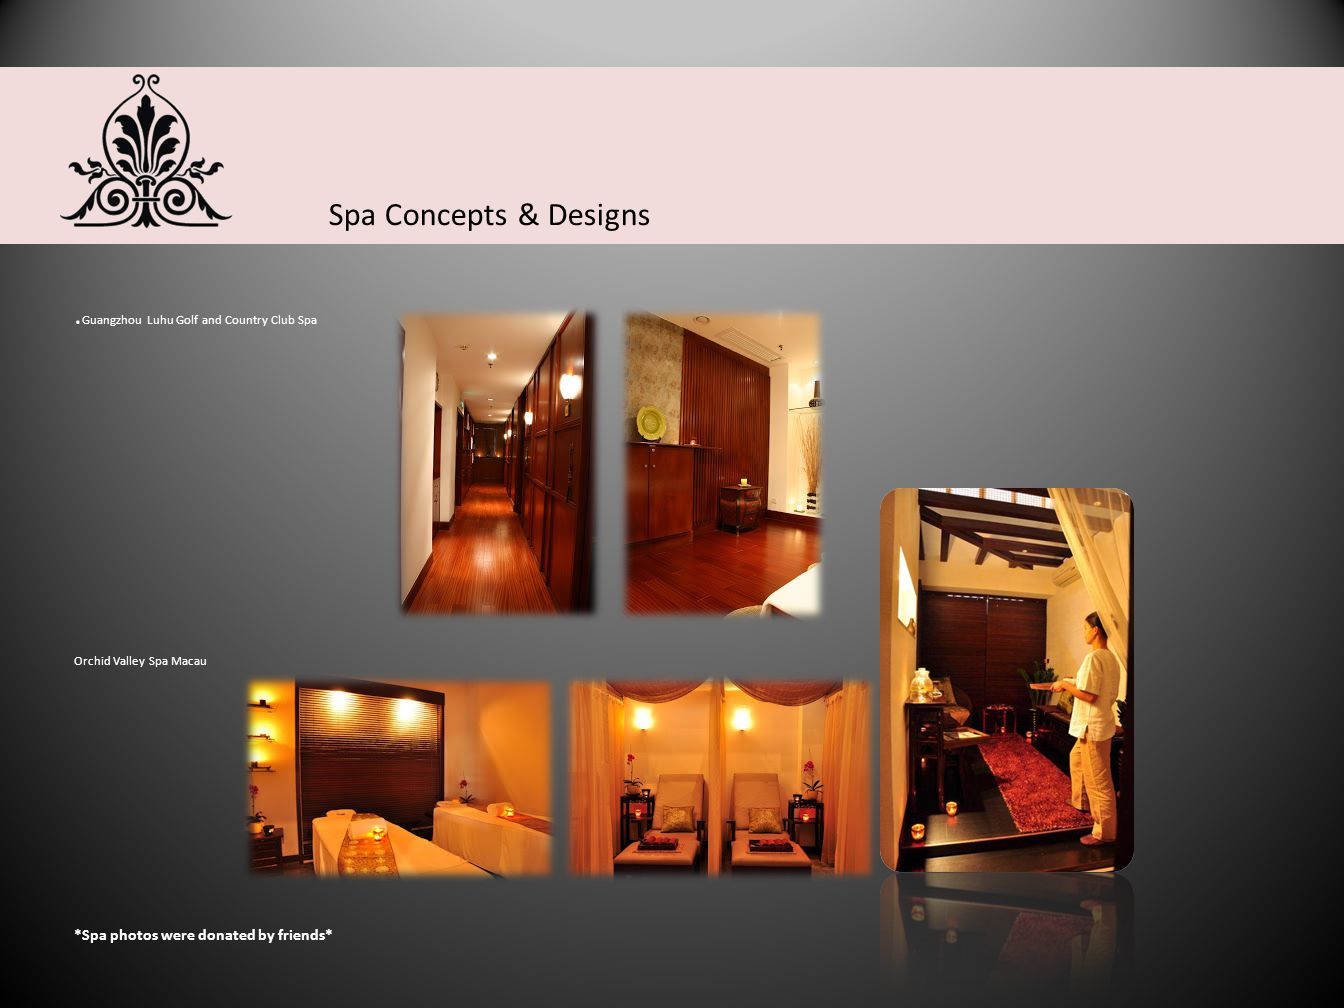 Spa Concepts & Designs *Spa photos were donated by friends*. Guangzhou Luhu Golf and Country Club Spa Orchid Valley Spa Macau